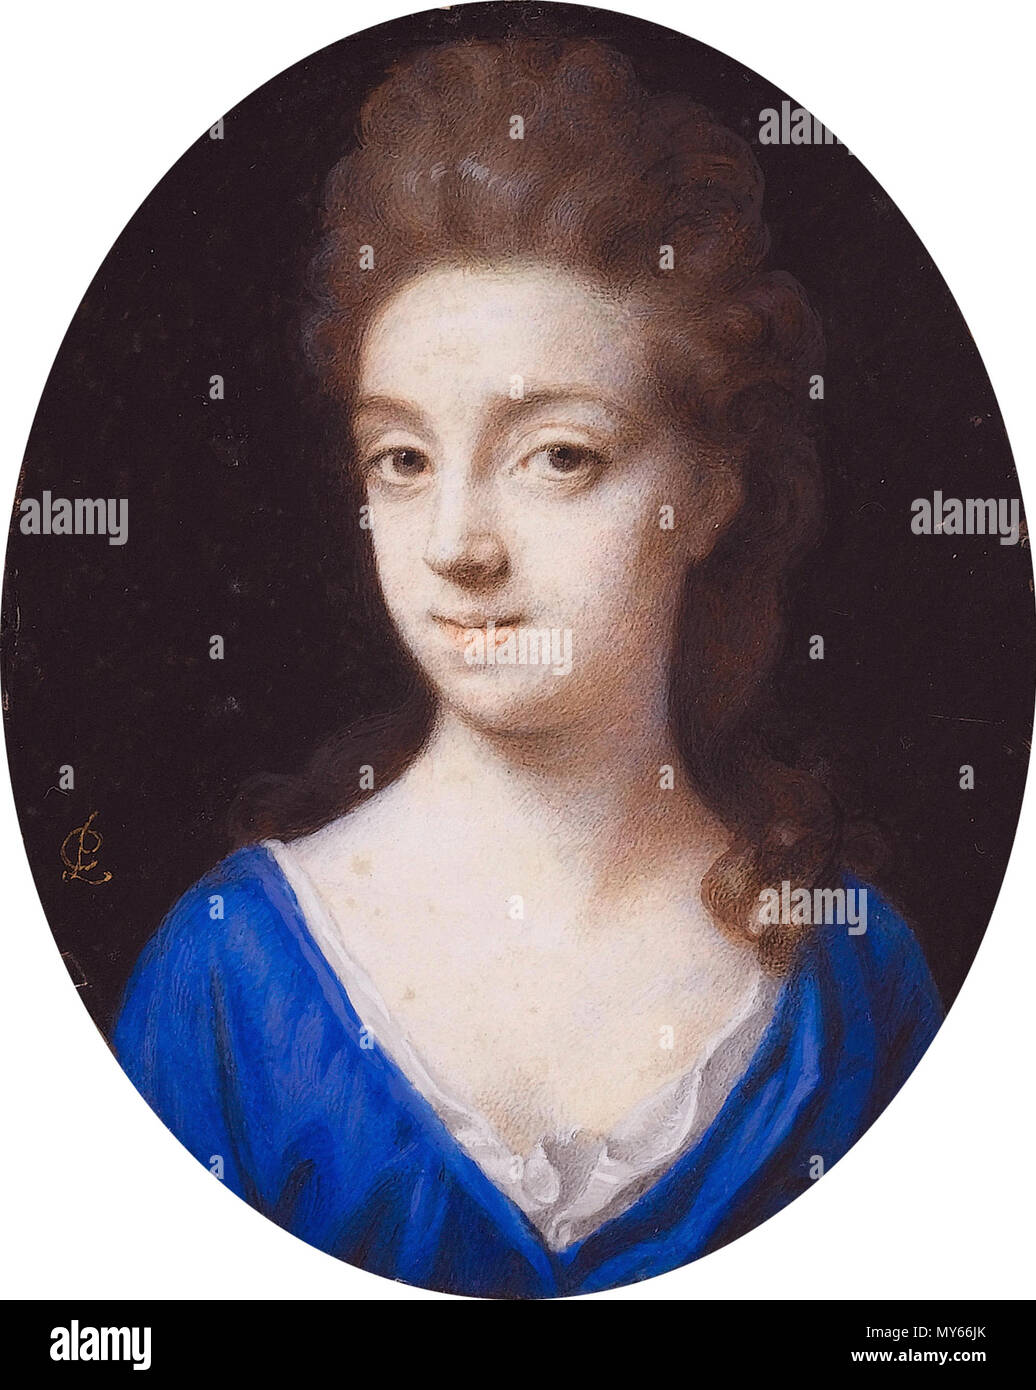 . English: Carey, daughter of Sir Alexander Fraser Bt., wife of Charles Mordaunt, 3rd Earl of Peterborough on vellum oval, 8,7 cm high signed l.c.: PC  . second half of 17th century. Peter Cross (c 1650-1724) 97 Carey, Countess of Peterborough, by Peter Cross (c 1650-1724) - Stock Image